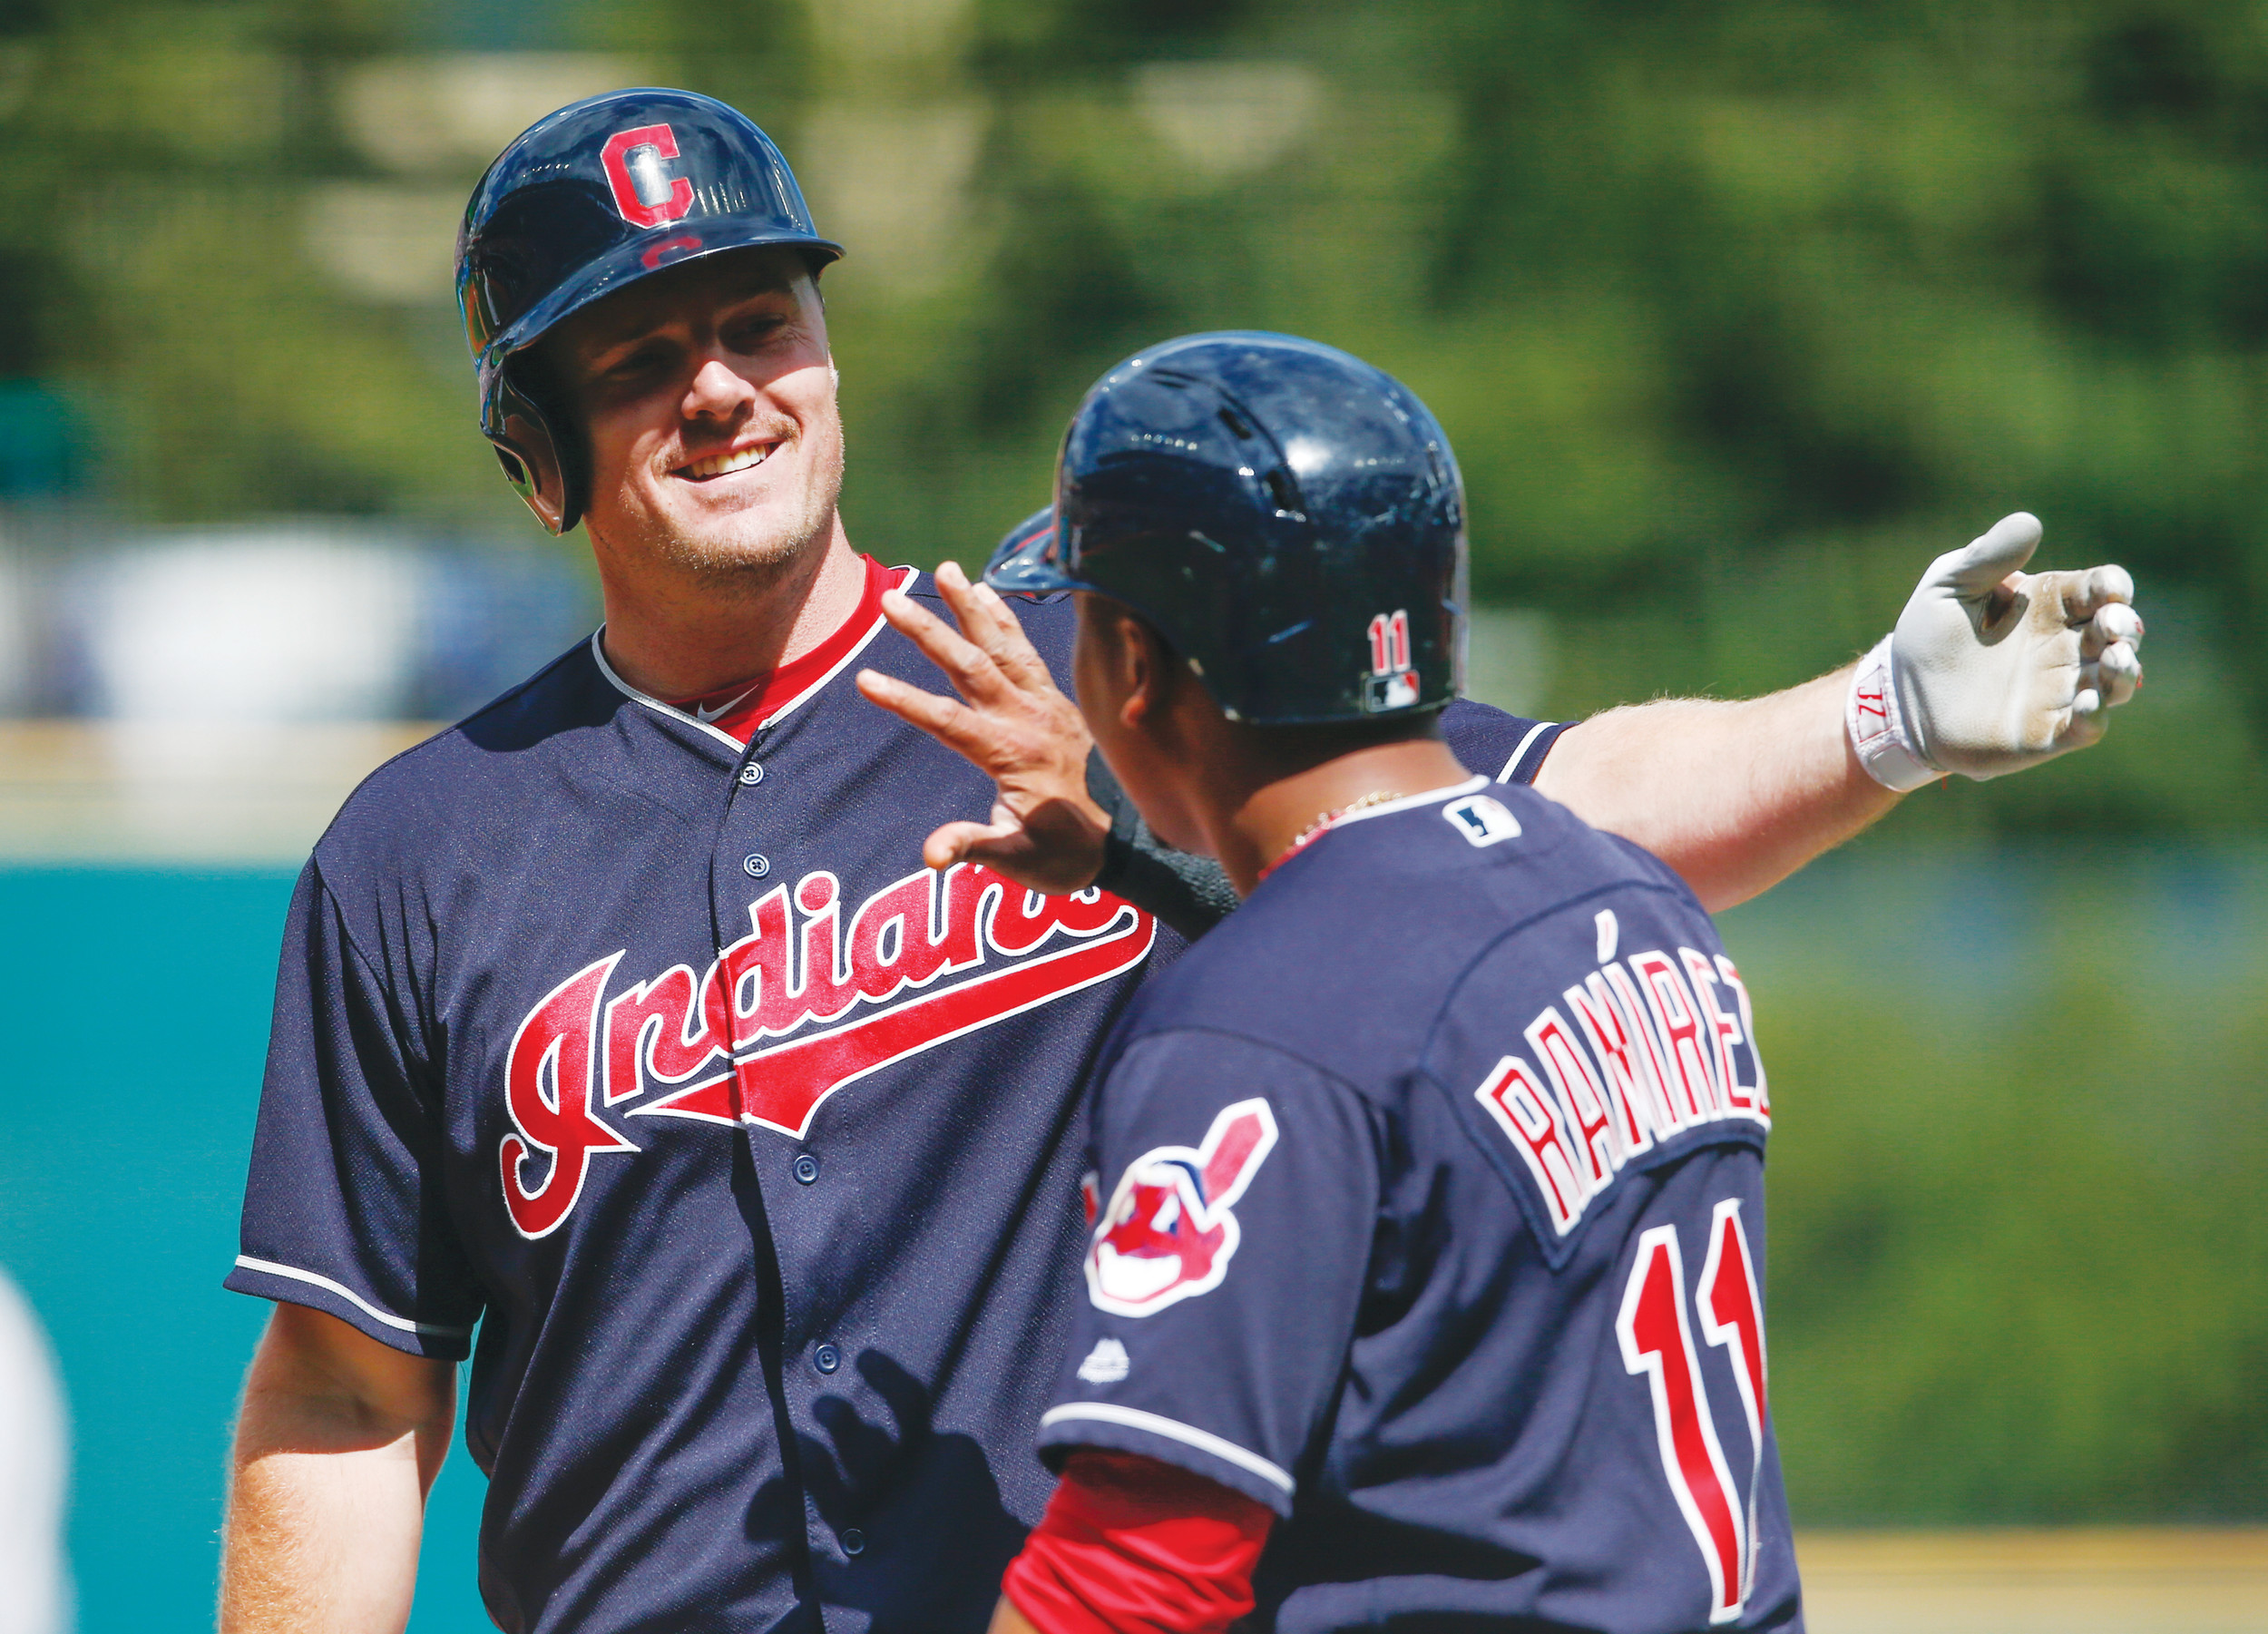 Cleveland's Jay Bruce celebrates with Jose Ramirez (11) after hitting a 3-run home run during the Indians' 5-3 victory over Detroit on Wednesday in Cleveland.